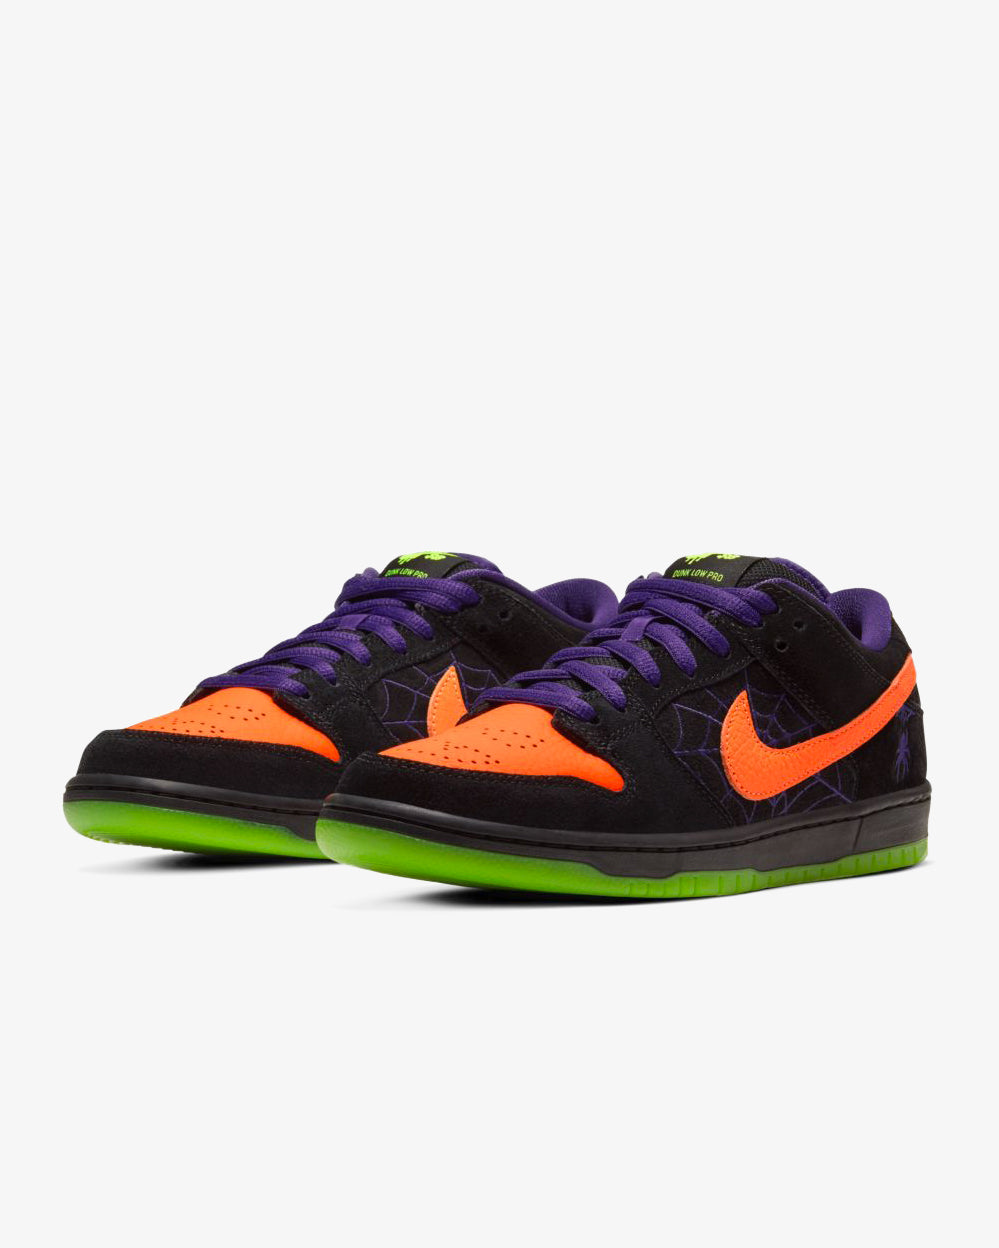 Nike SB FA19 DUNK LOW HALLOWEEN